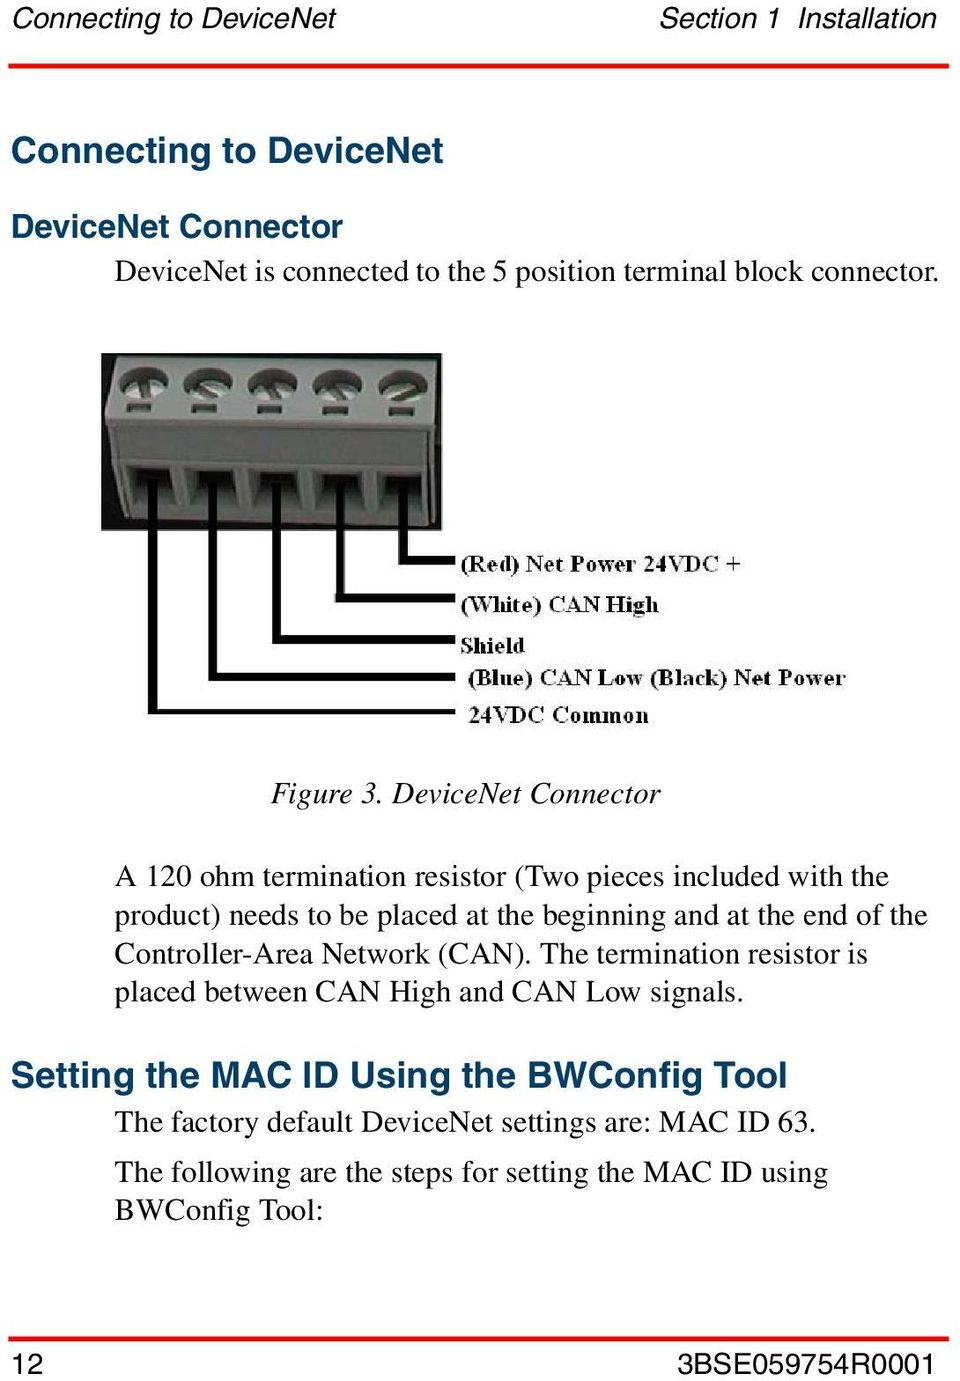 DeviceNet Connector A 120 ohm termination resistor (Two pieces included with the product) needs to be placed at the beginning and at the end of the